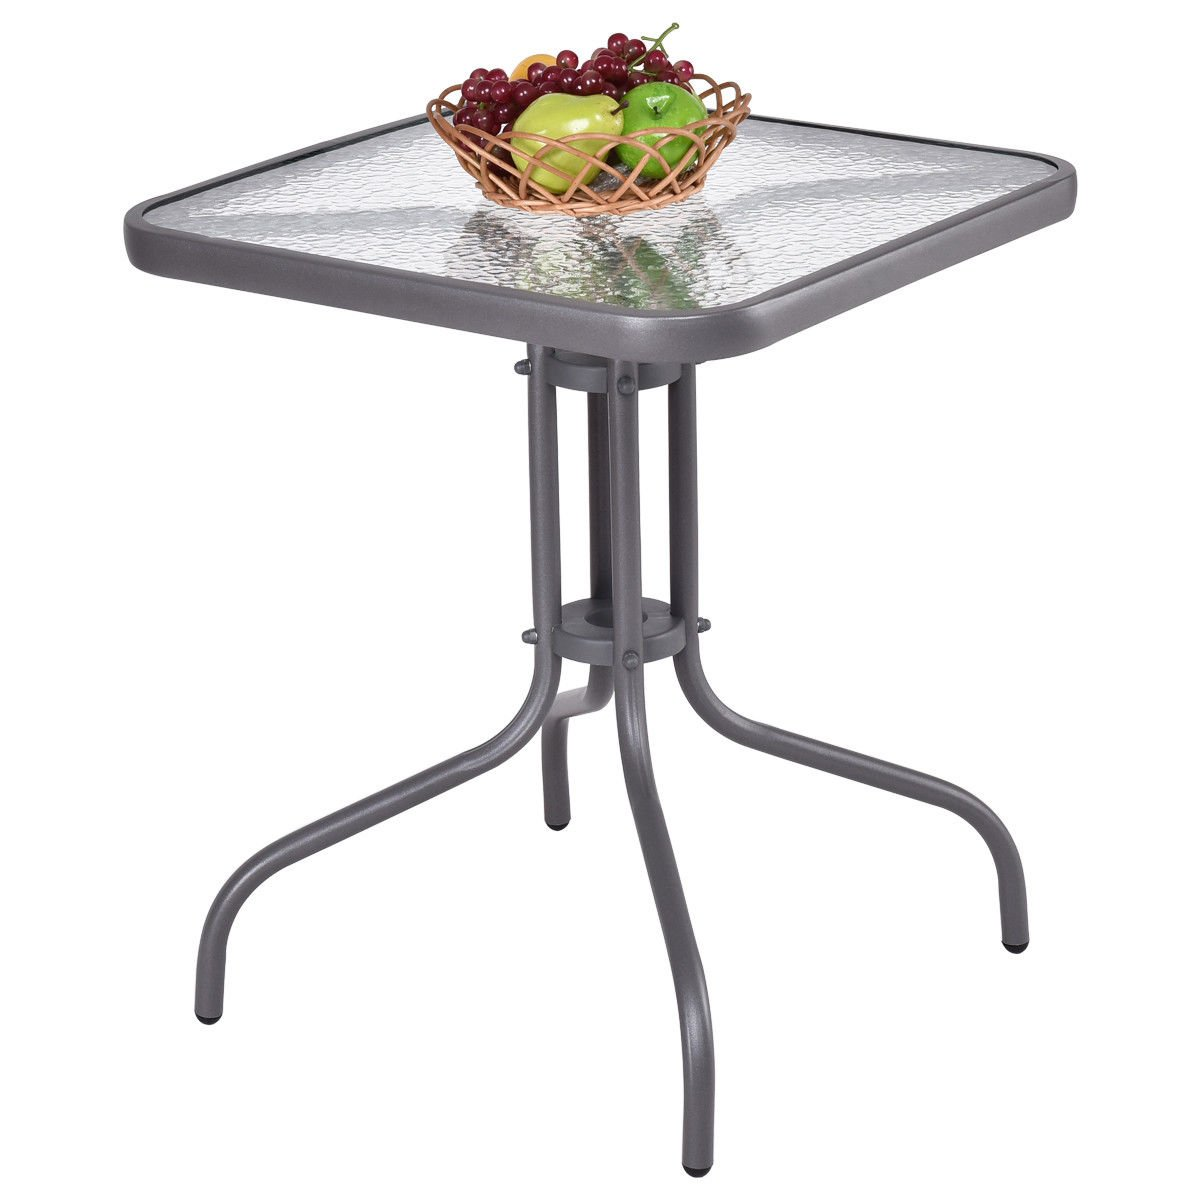 Tangkula 24'' Patio Table Garden Yard Outdoor Lawn Indoor Tempered Glass Top Steel Frame Coffee End Side Table (grey square)